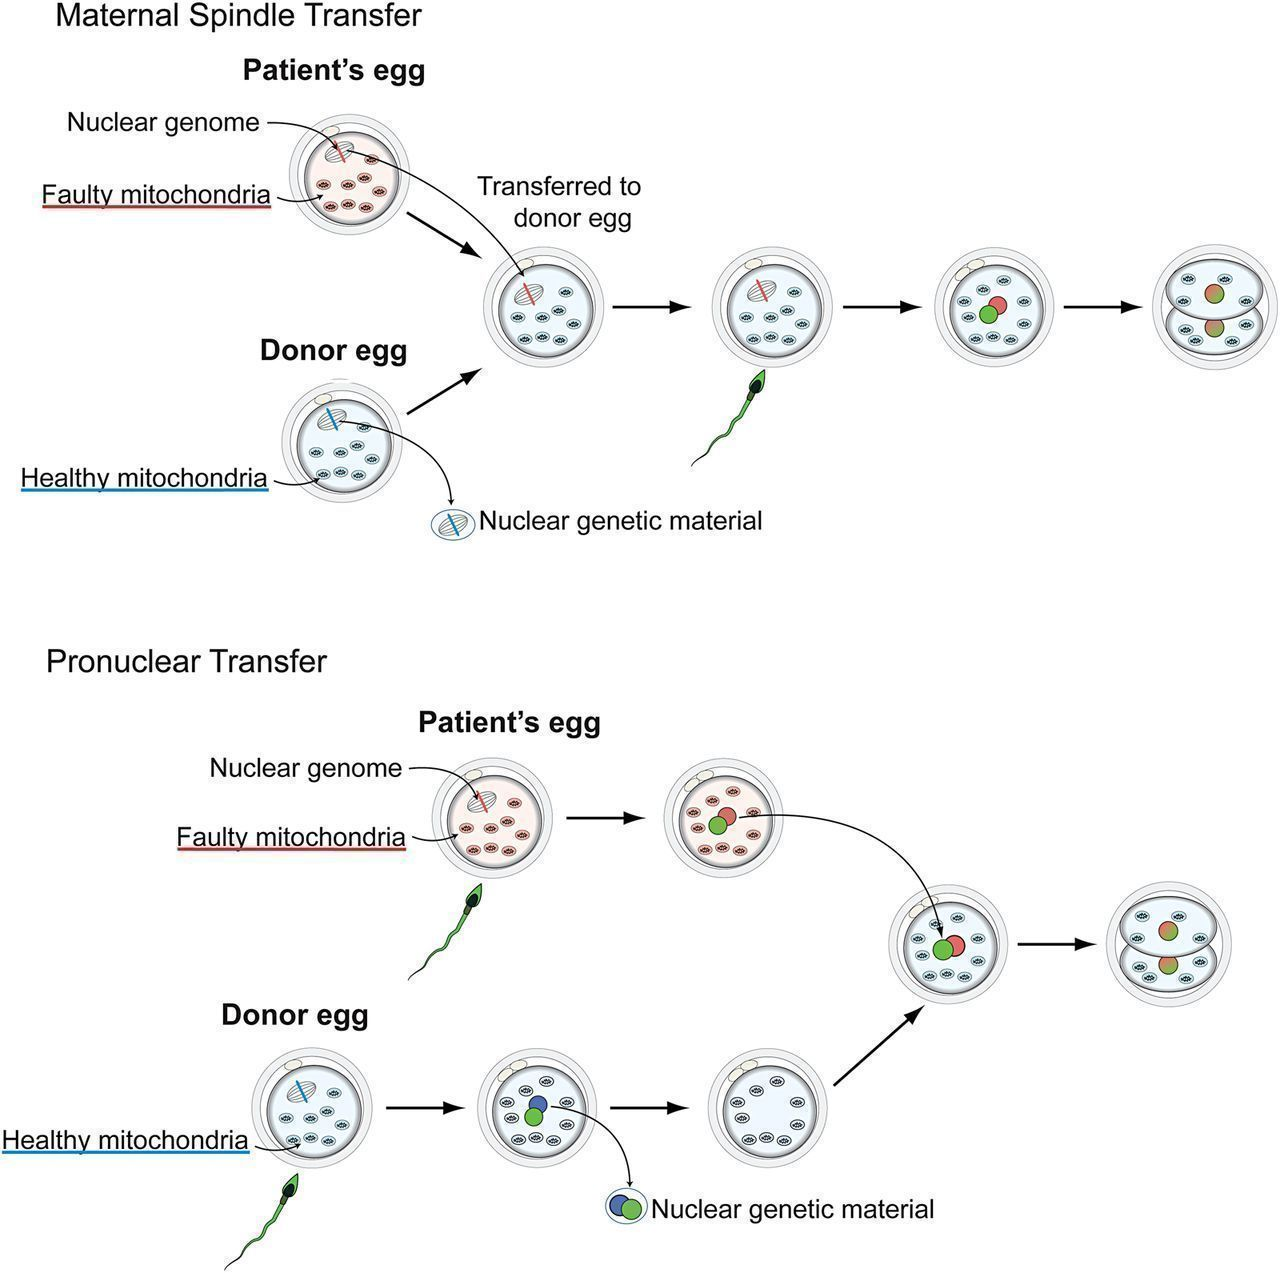 Maternal spindle transfer and Pronuclear transfer.